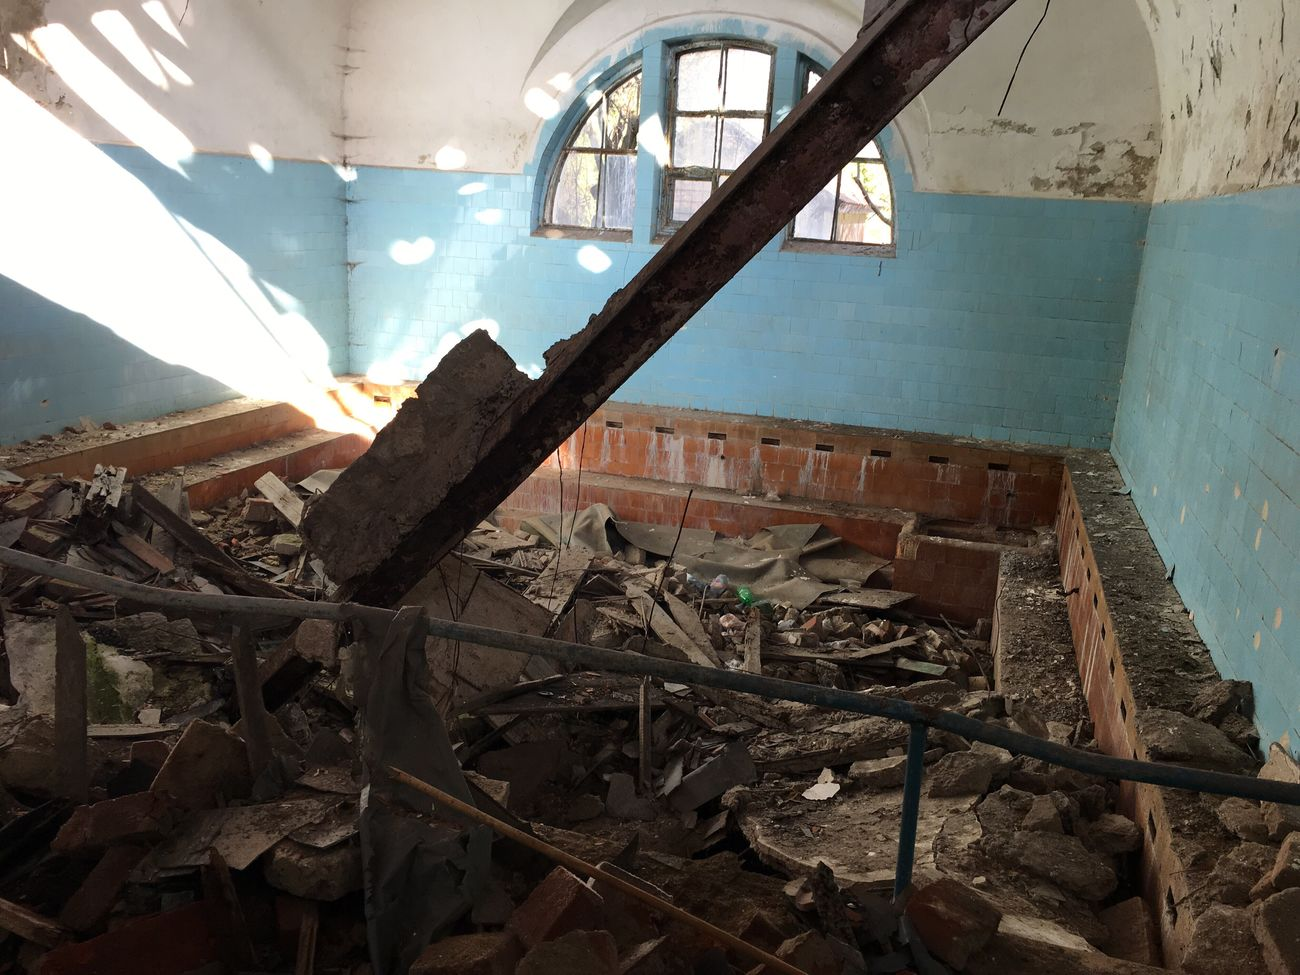 Abandoned Built Structure Obsolete No People Indoors  Bad Condition Architecture Day Demolished Ruin Ruins Ruined Building Thermal Bath Bath Run-down Bleak Architecture Weathered Worn Out Construction Indoors  Obsolete Damaged Discarded Destruction Piano Moments